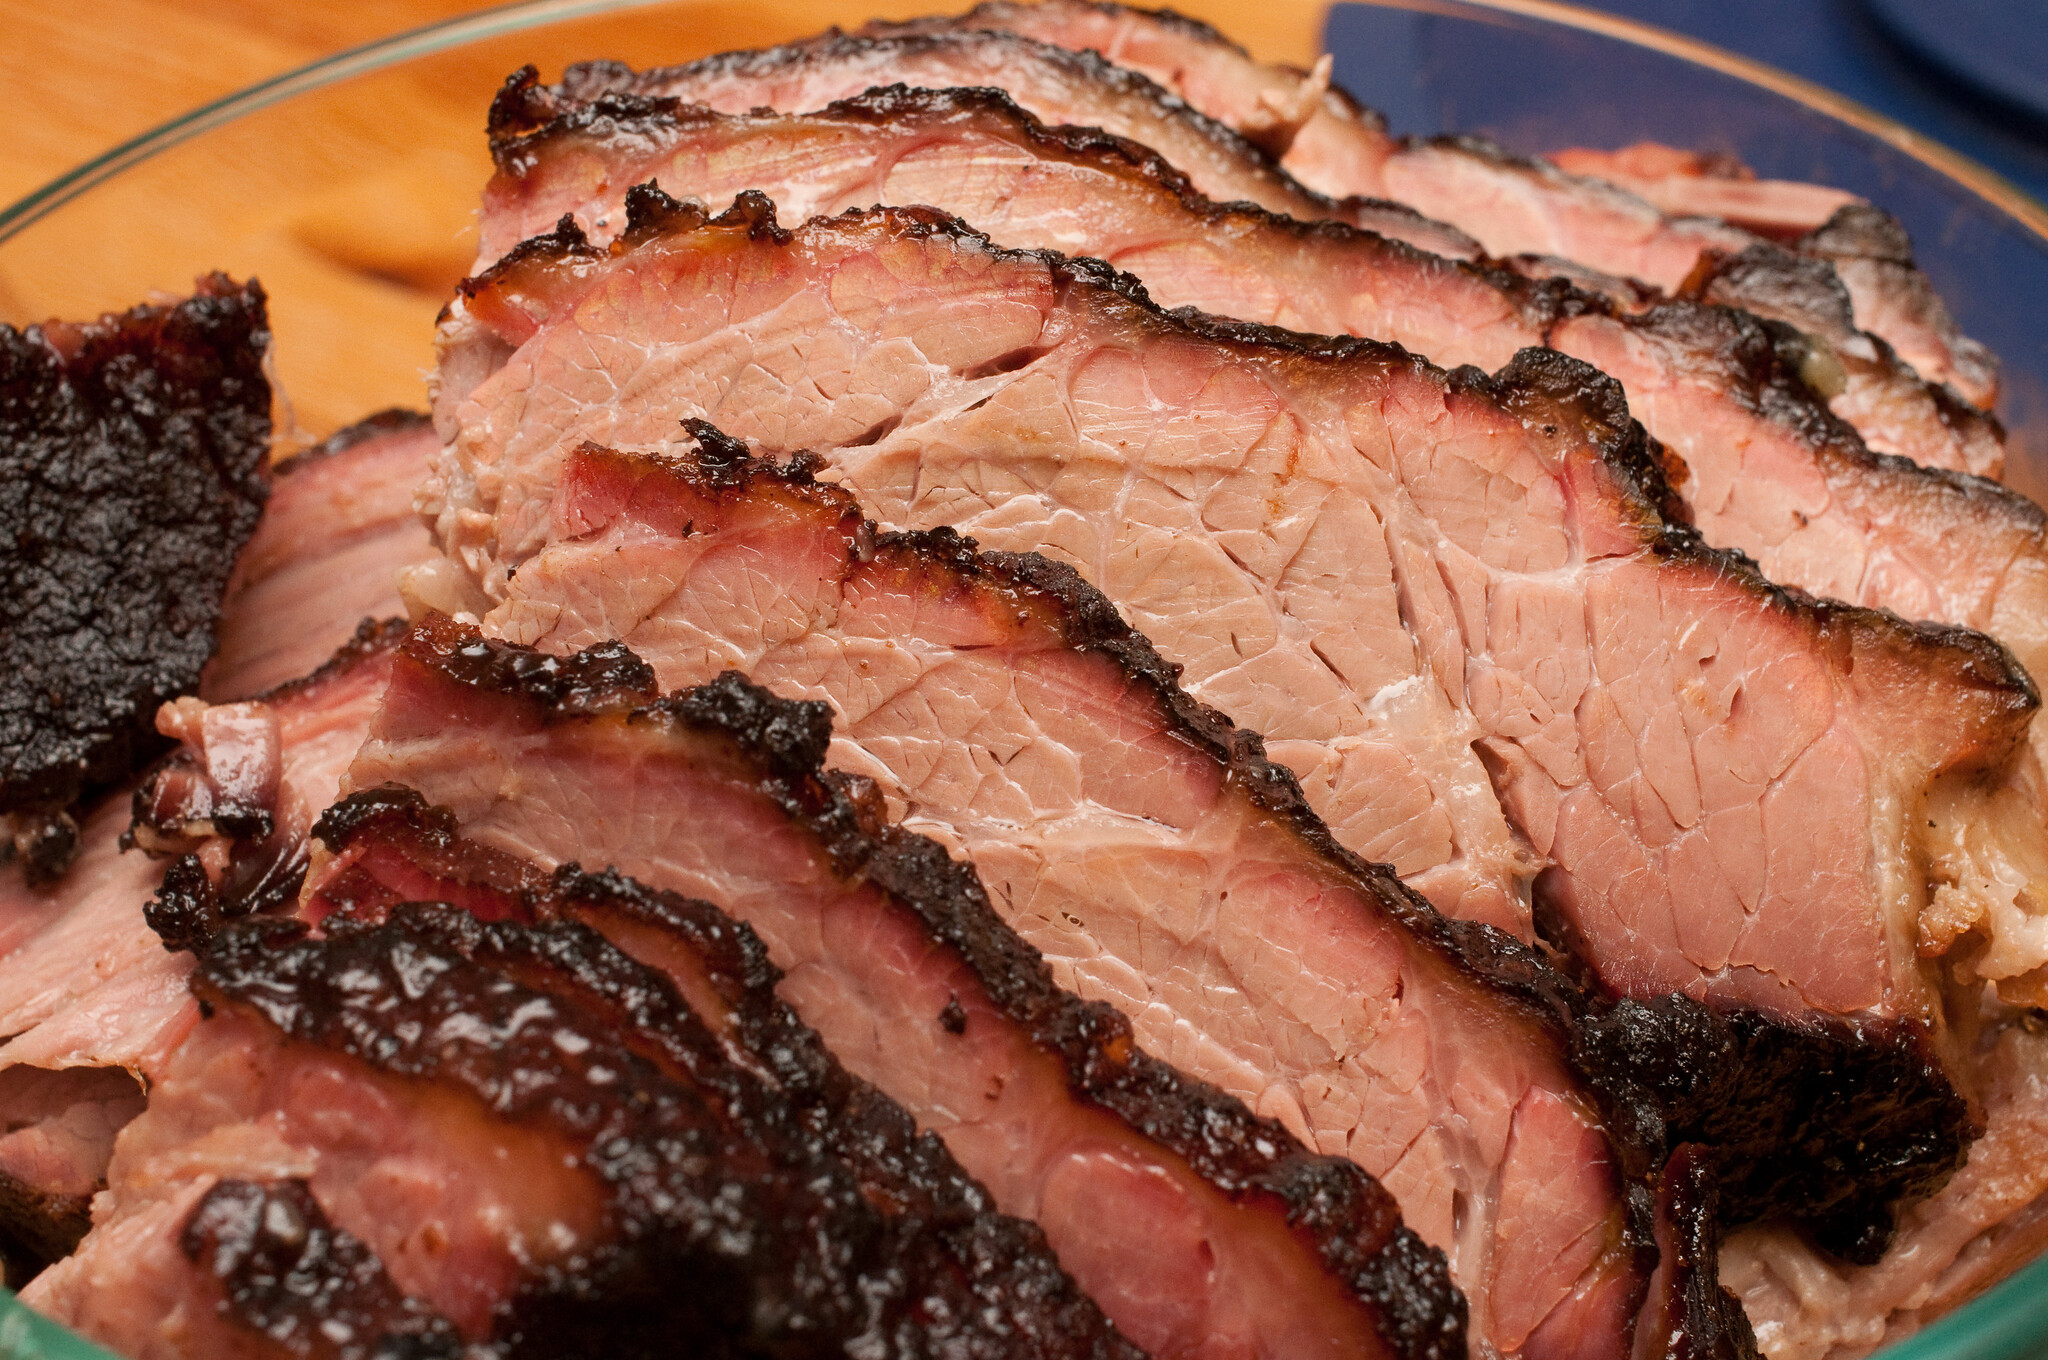 How to Prepare Brisket